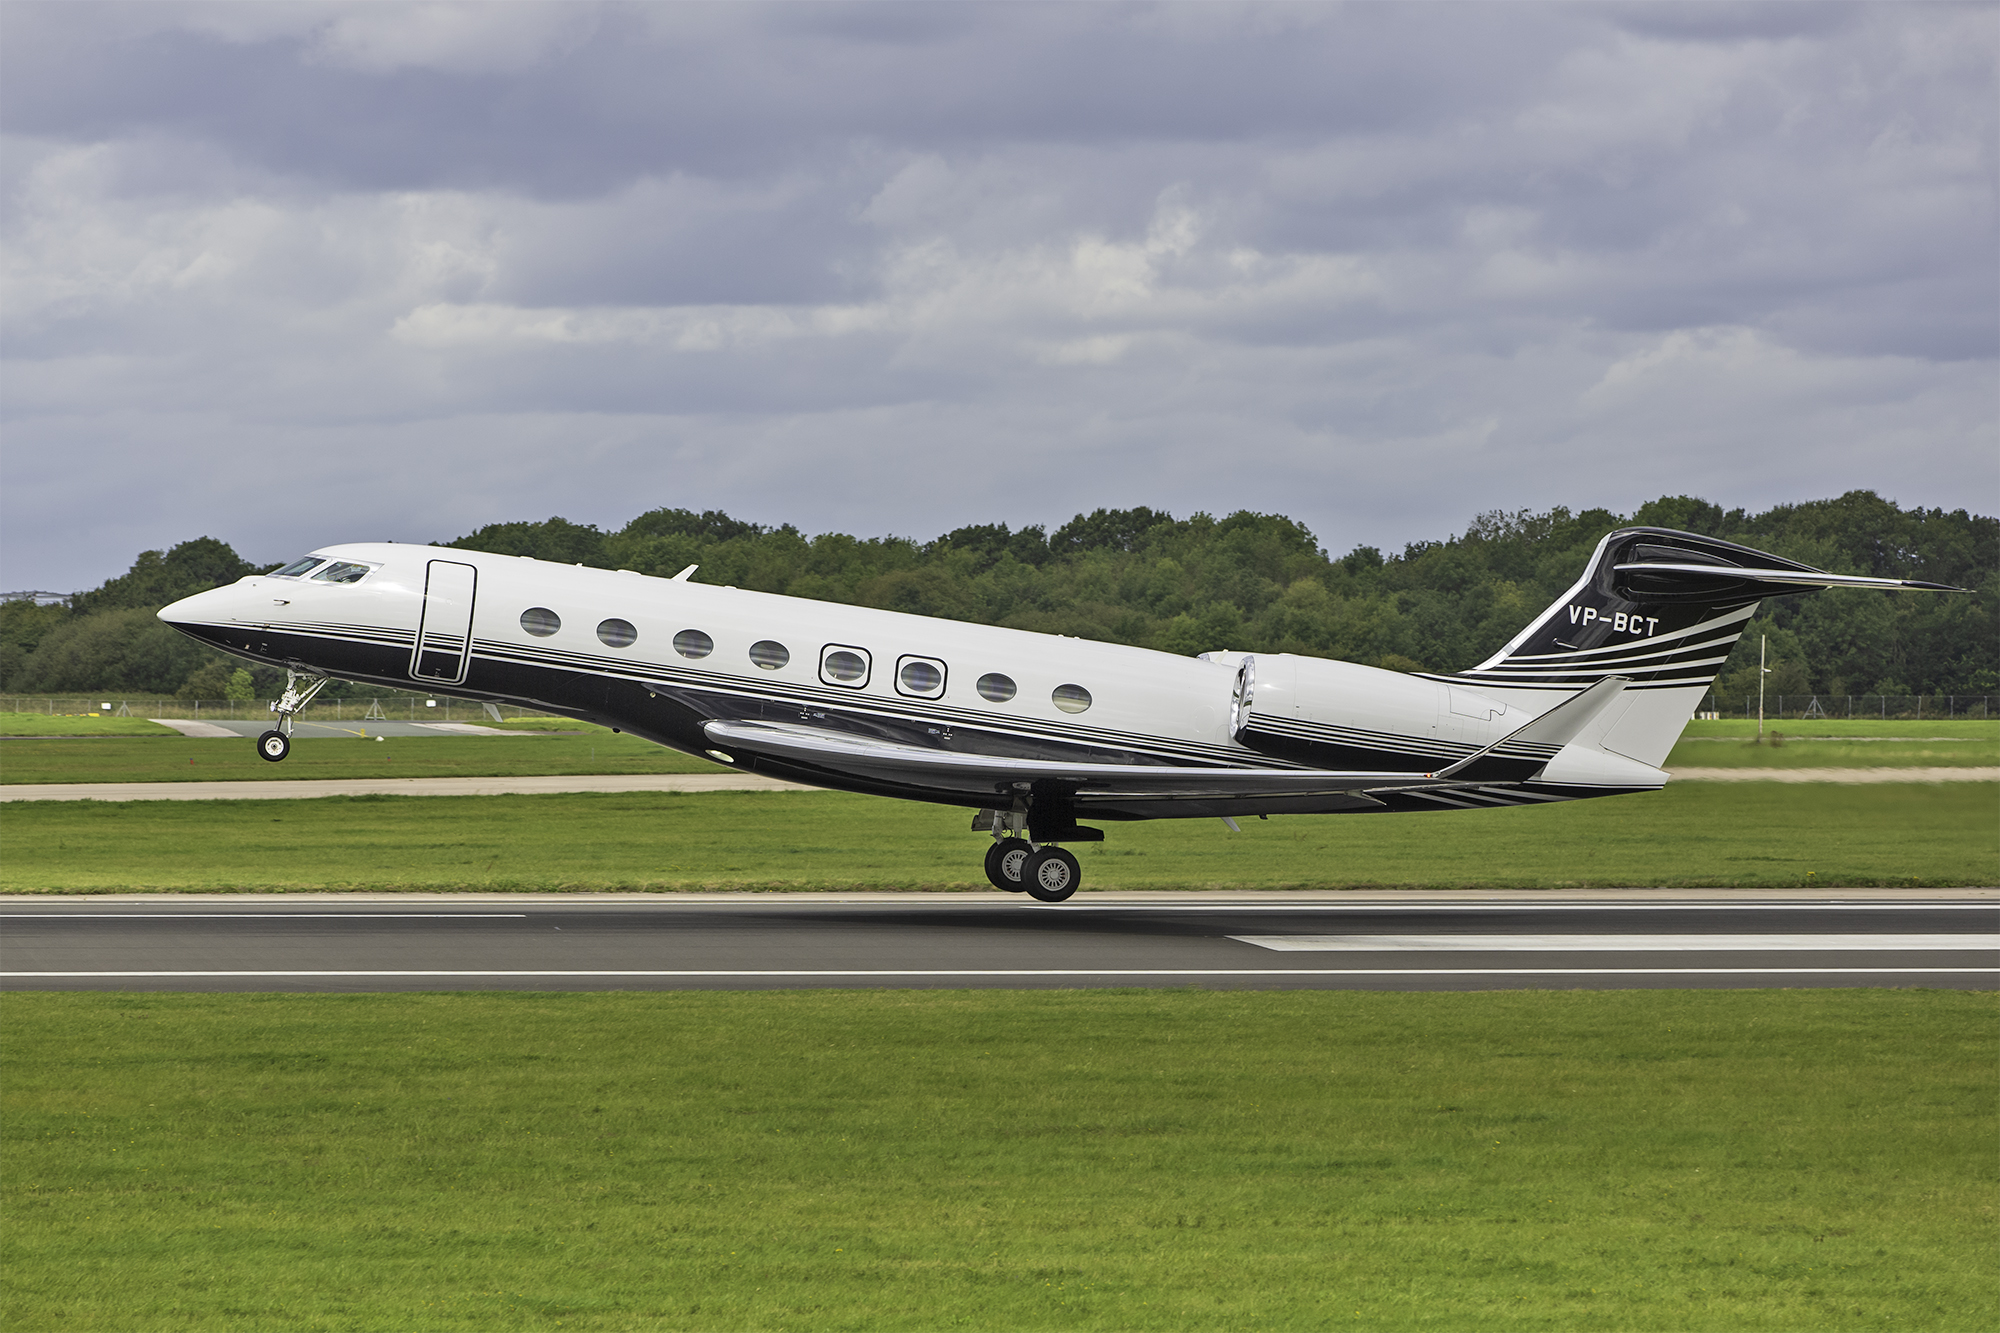 A superb shot of Gulfstream 650 VP-BCT as she becomes airborne from Runway 23 Left on 2nd September. Photo: Paul Bailey.